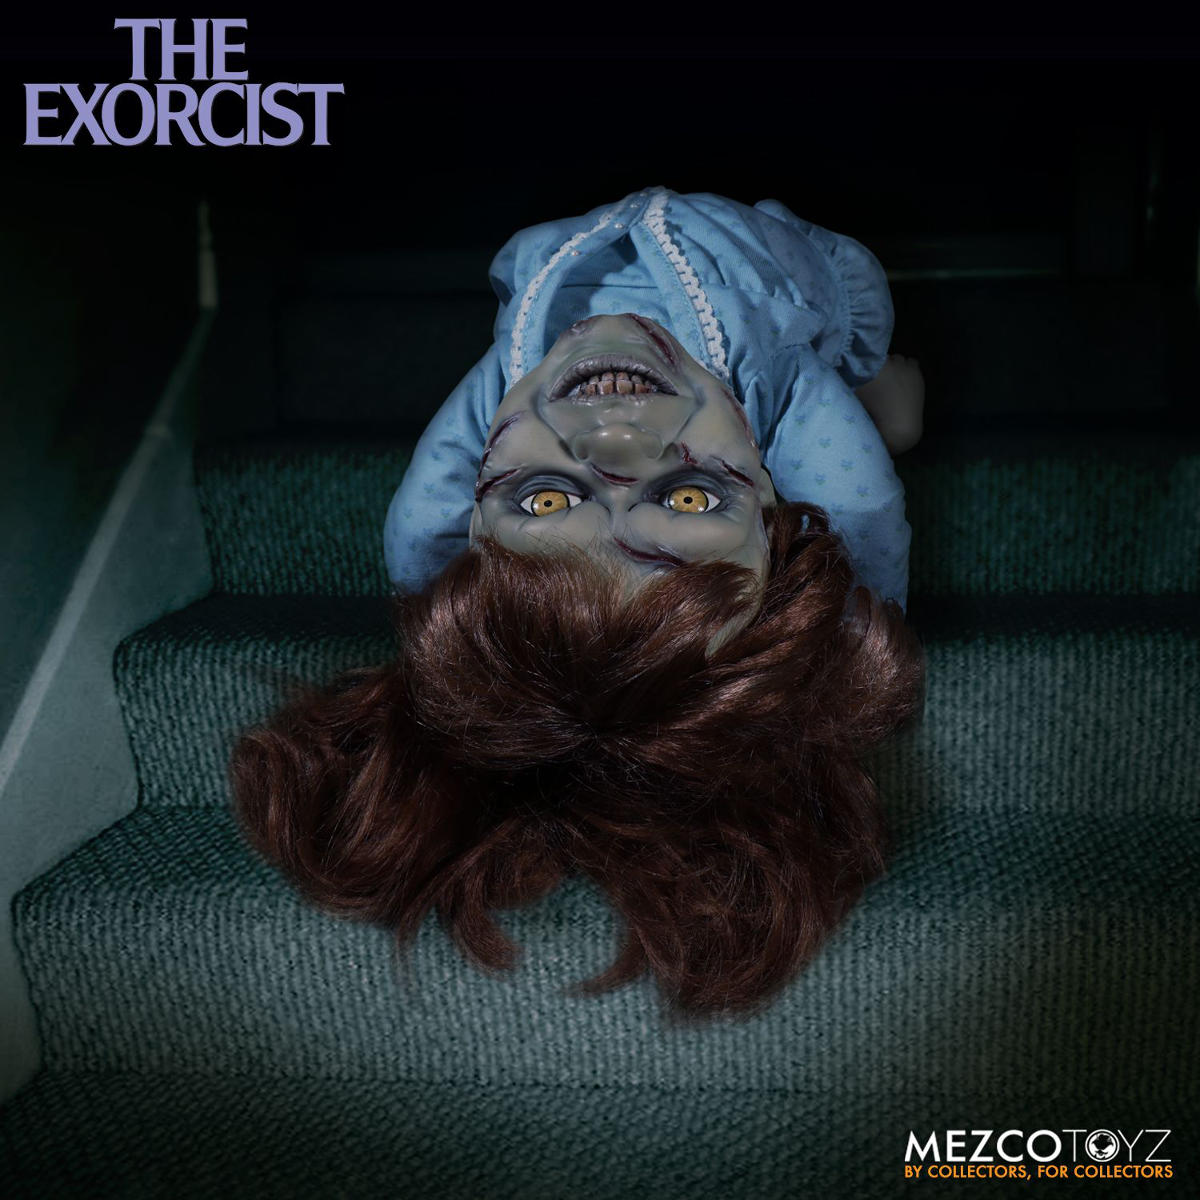 Mezco Toyz The Exorcist 4